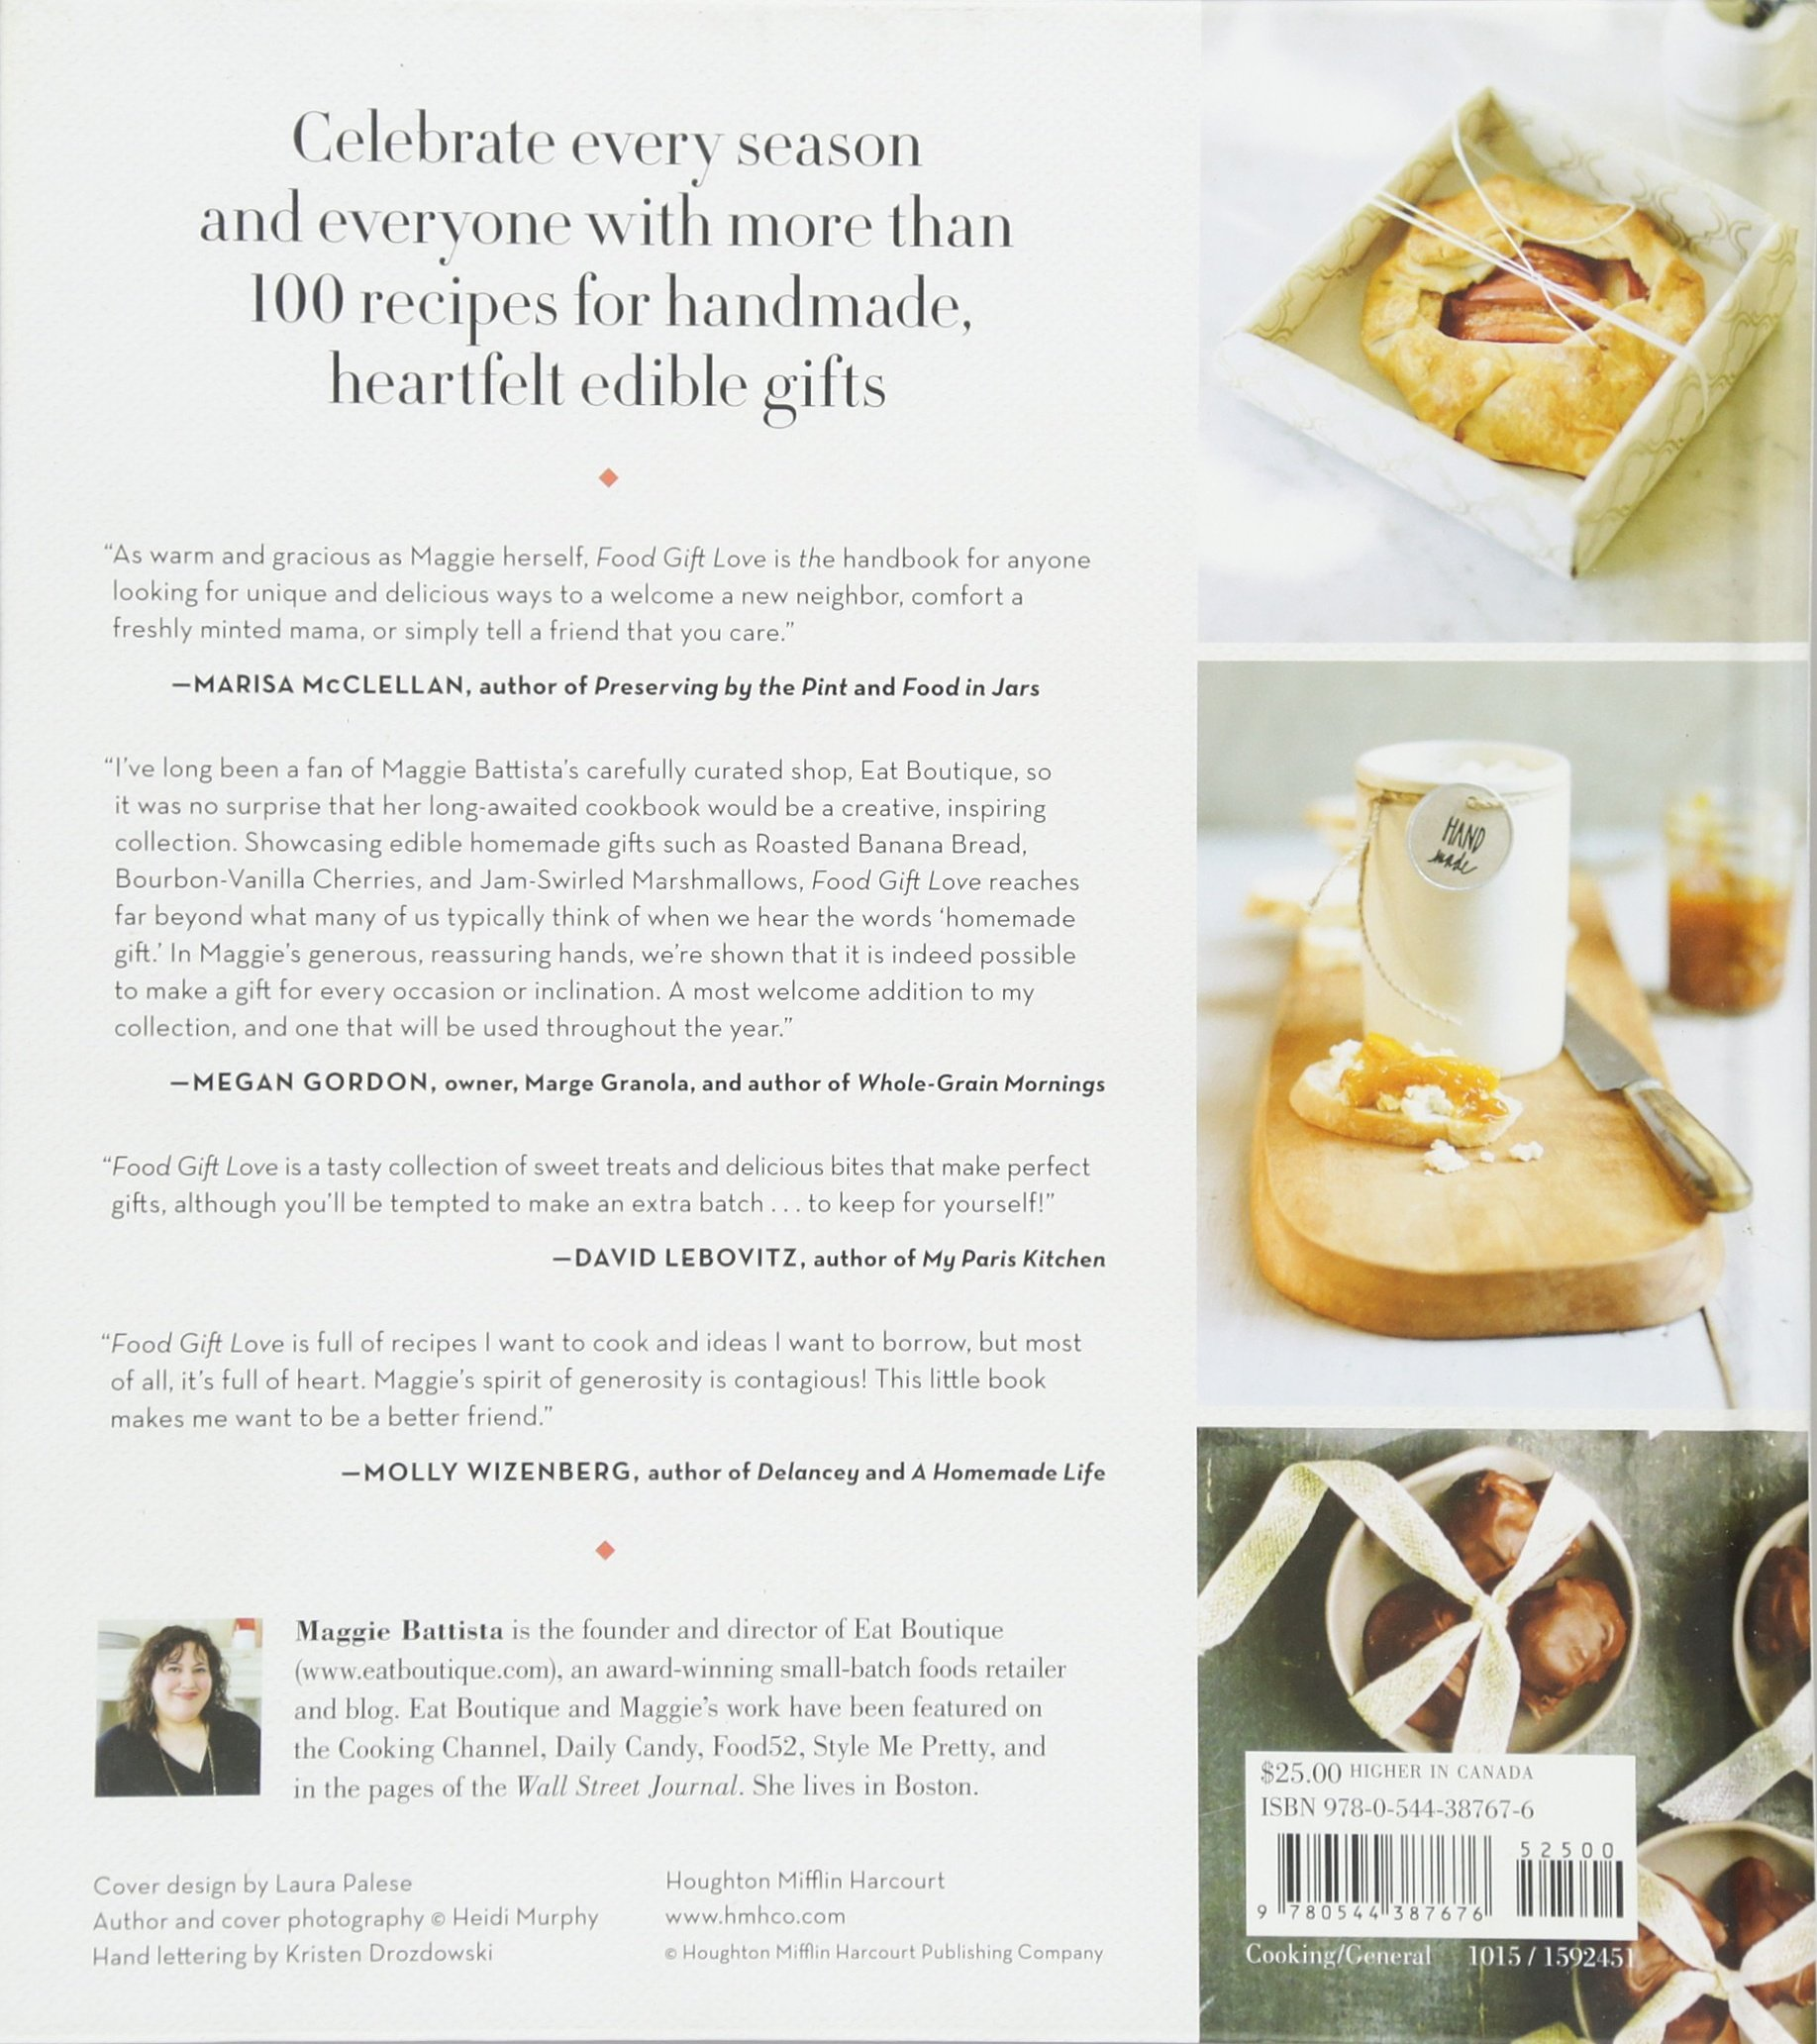 Food gift love more than 100 recipes to make wrap and share food gift love more than 100 recipes to make wrap and share maggie battista 9780544387676 amazon books forumfinder Image collections